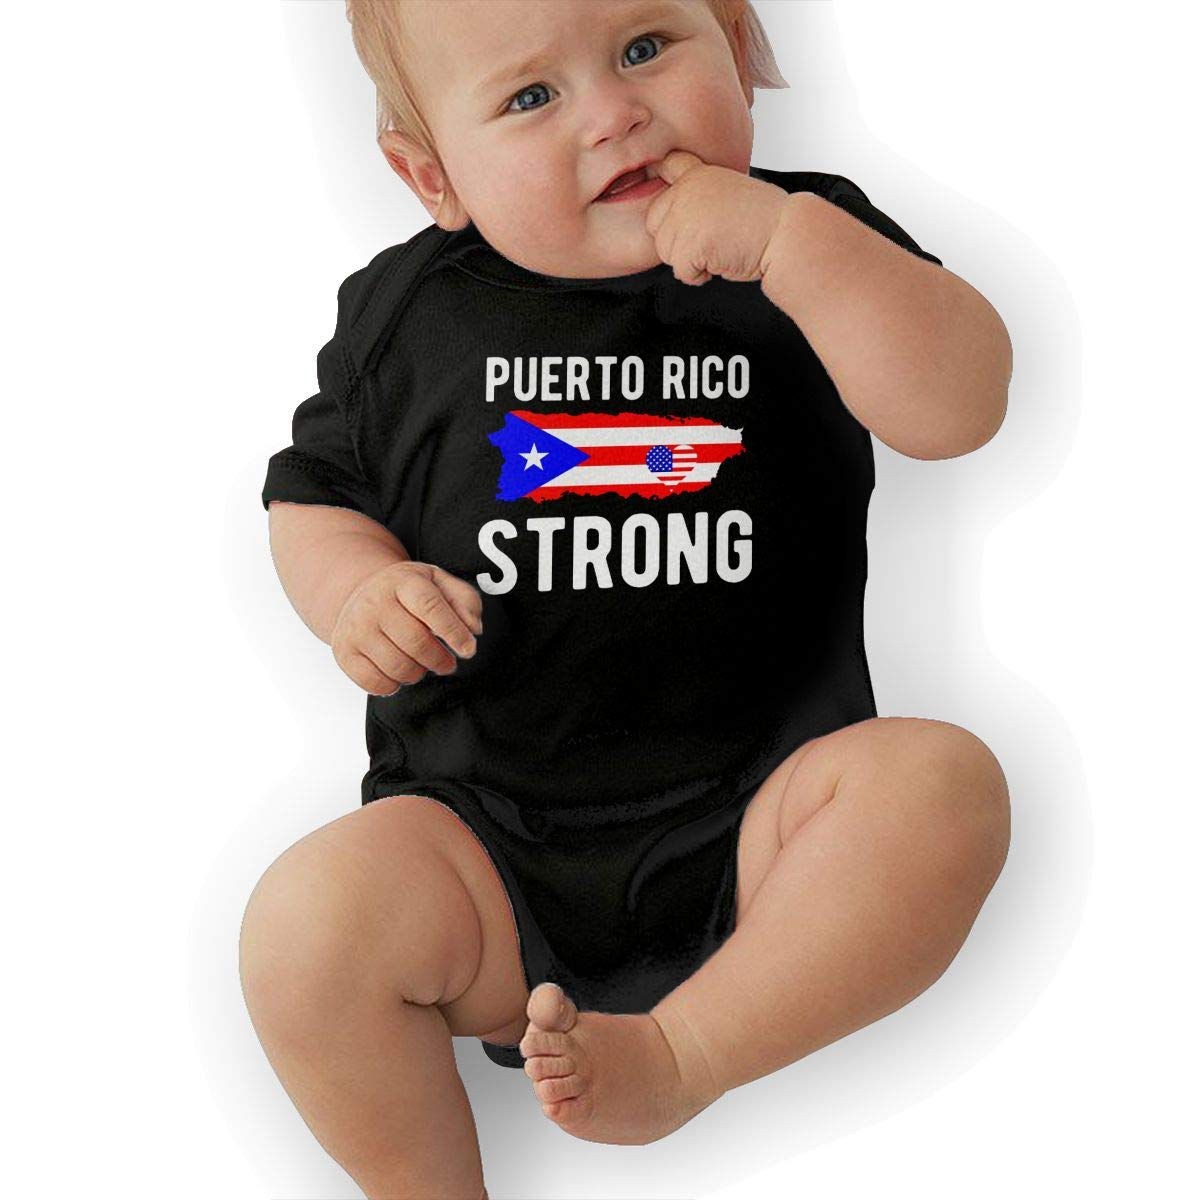 Puerto Rico Strong Infant Baby Girl Boy Romper Jumpsuit Short Sleeved Bodysuit Tops Clothes